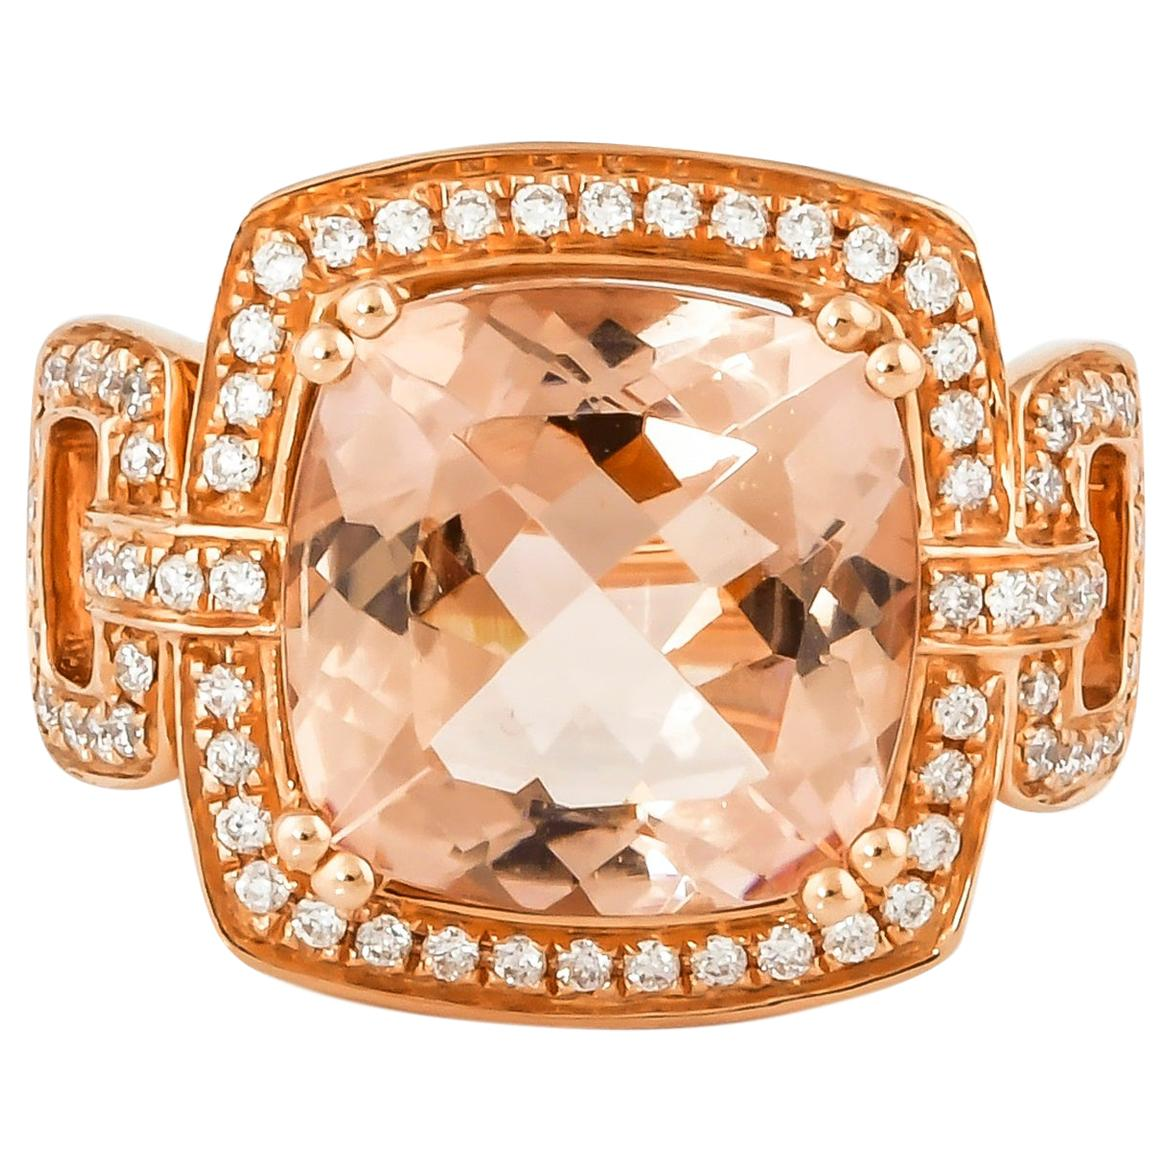 6.7 Carat Morganite and Diamond Ring in 18 Karat Rose Gold